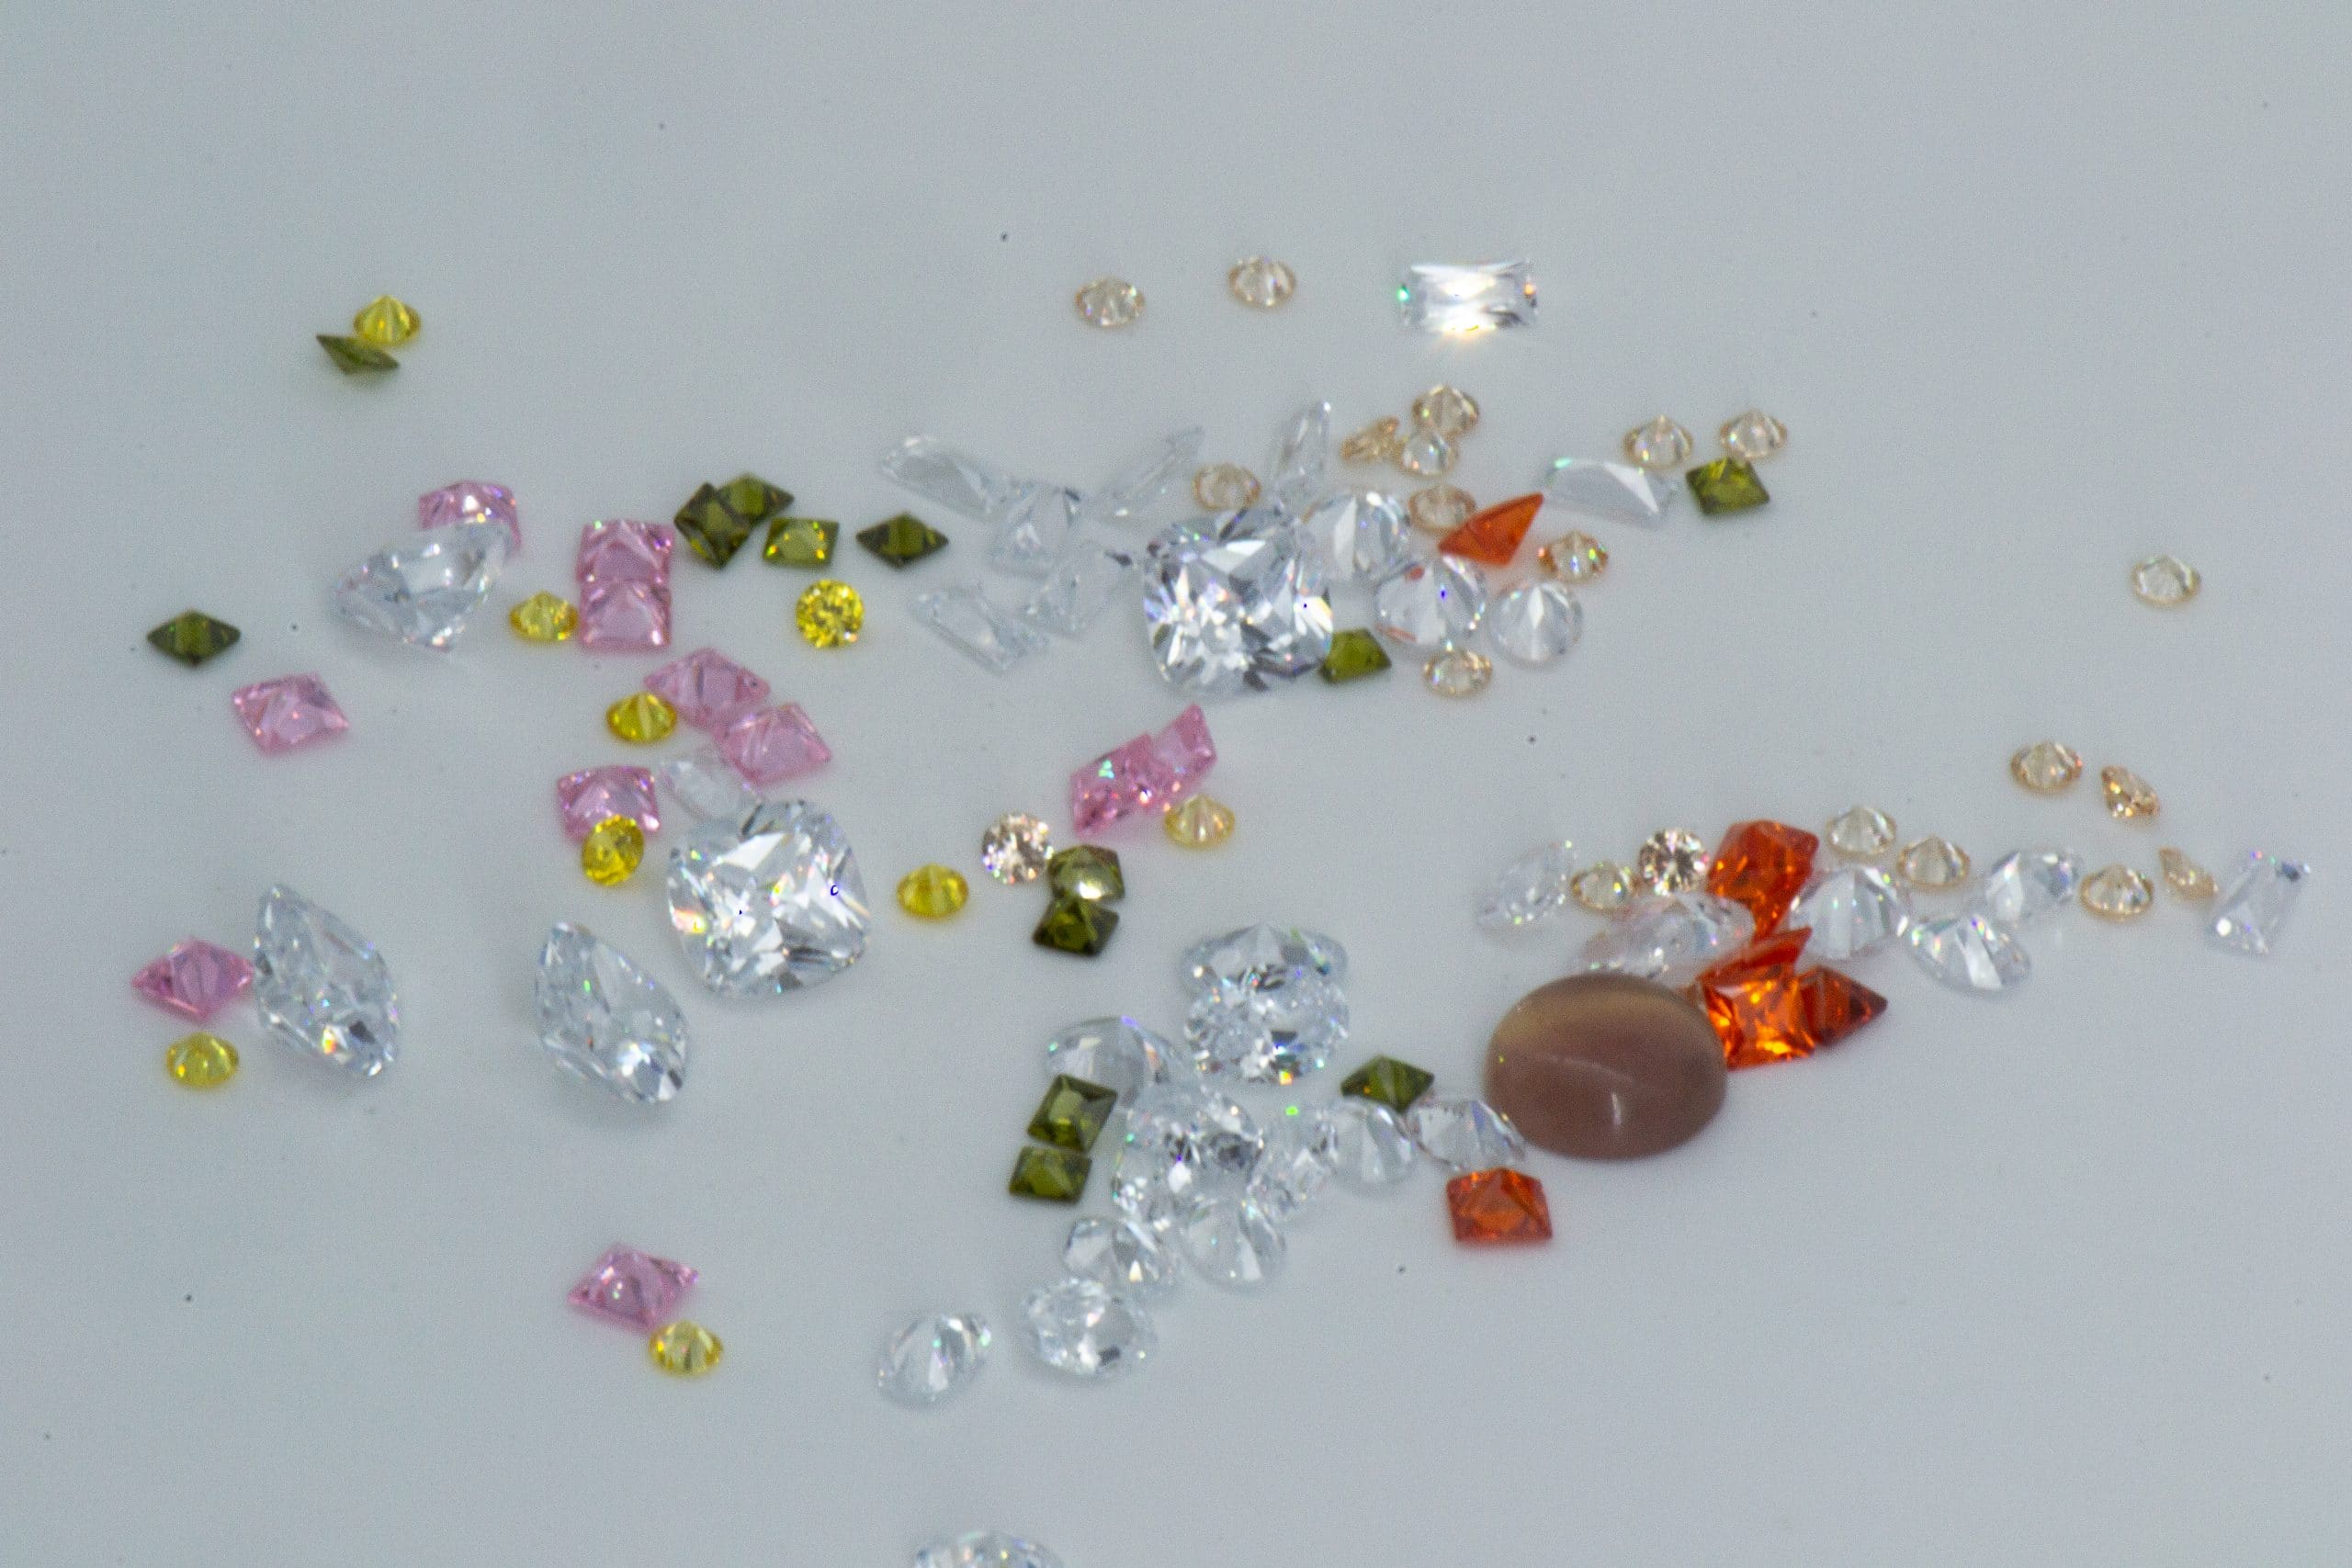 Cubic zirconia are sustainable sparkling and hardwearing gemstones